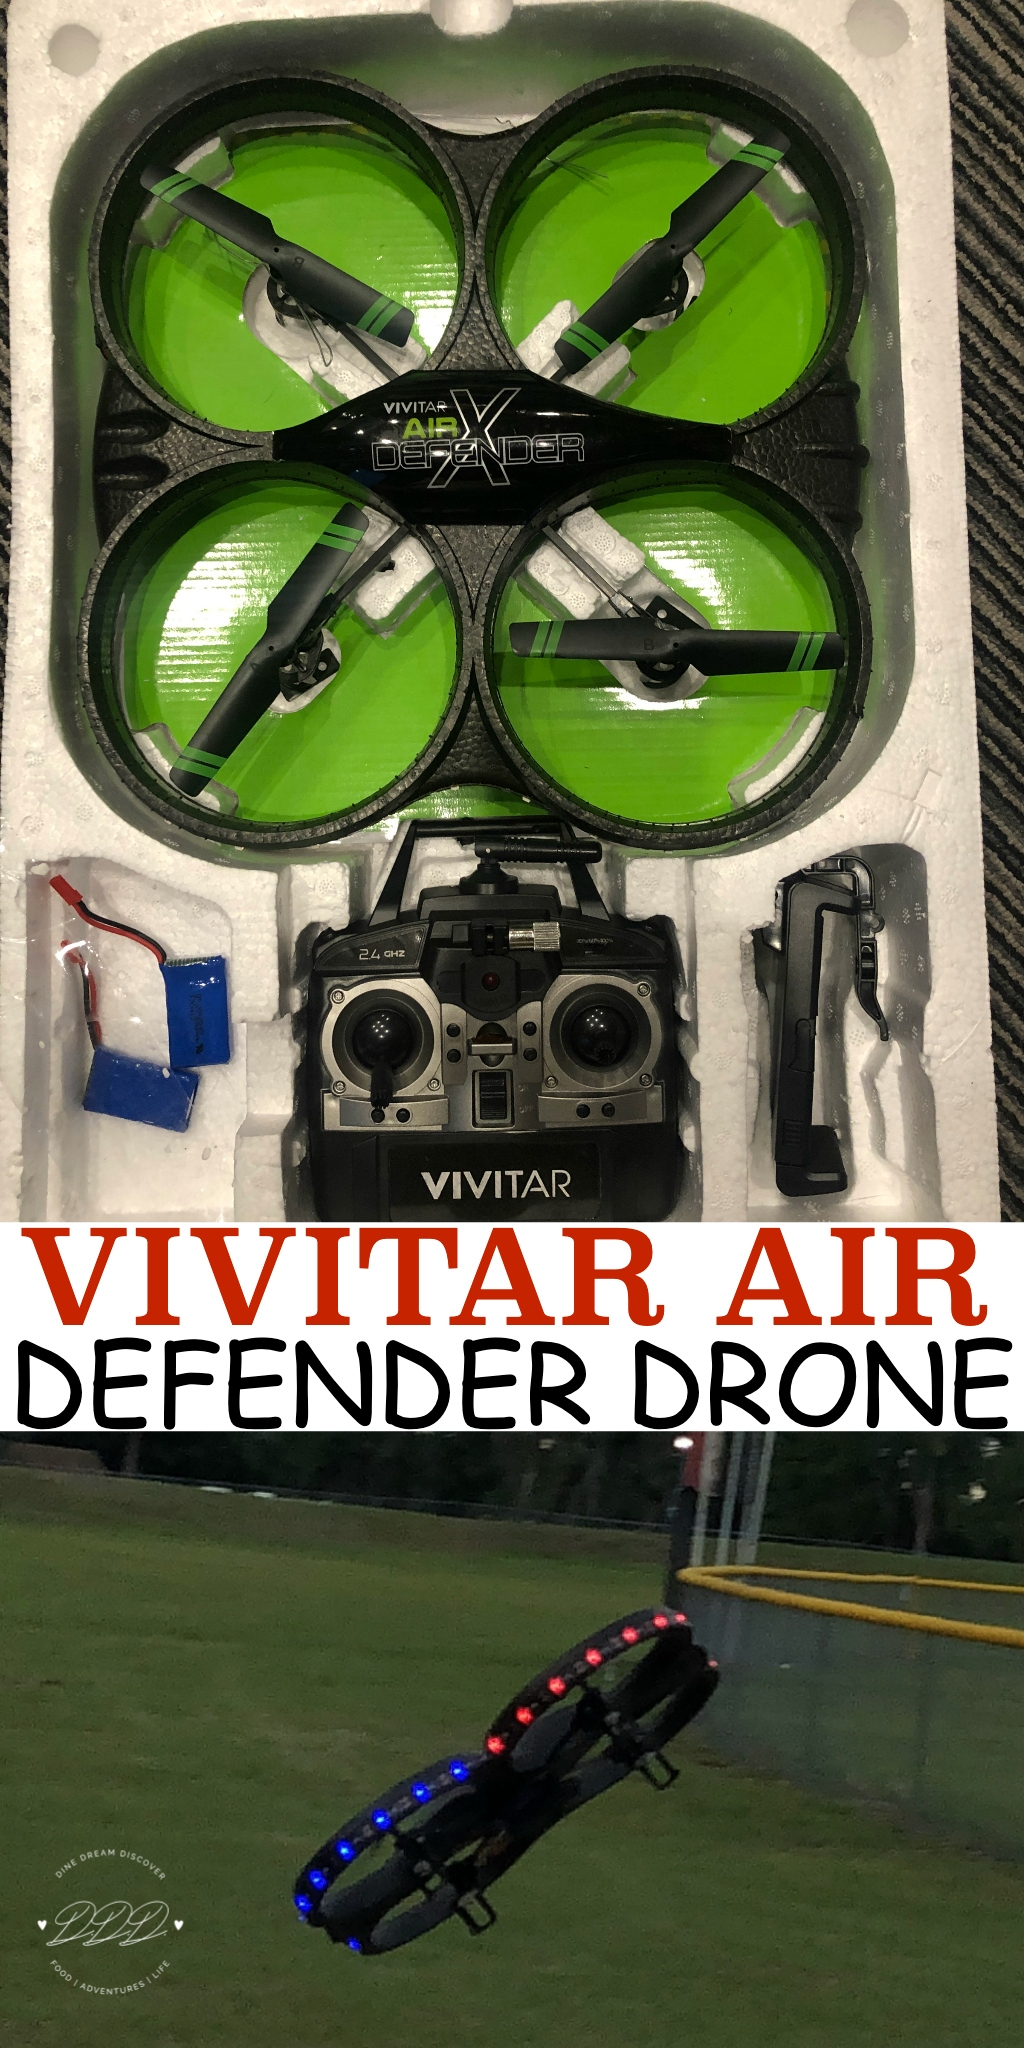 If you are looking for an inexpensive drone that does a little bit of everything, then you should take a look at the Vivitar Air Defender Drone.